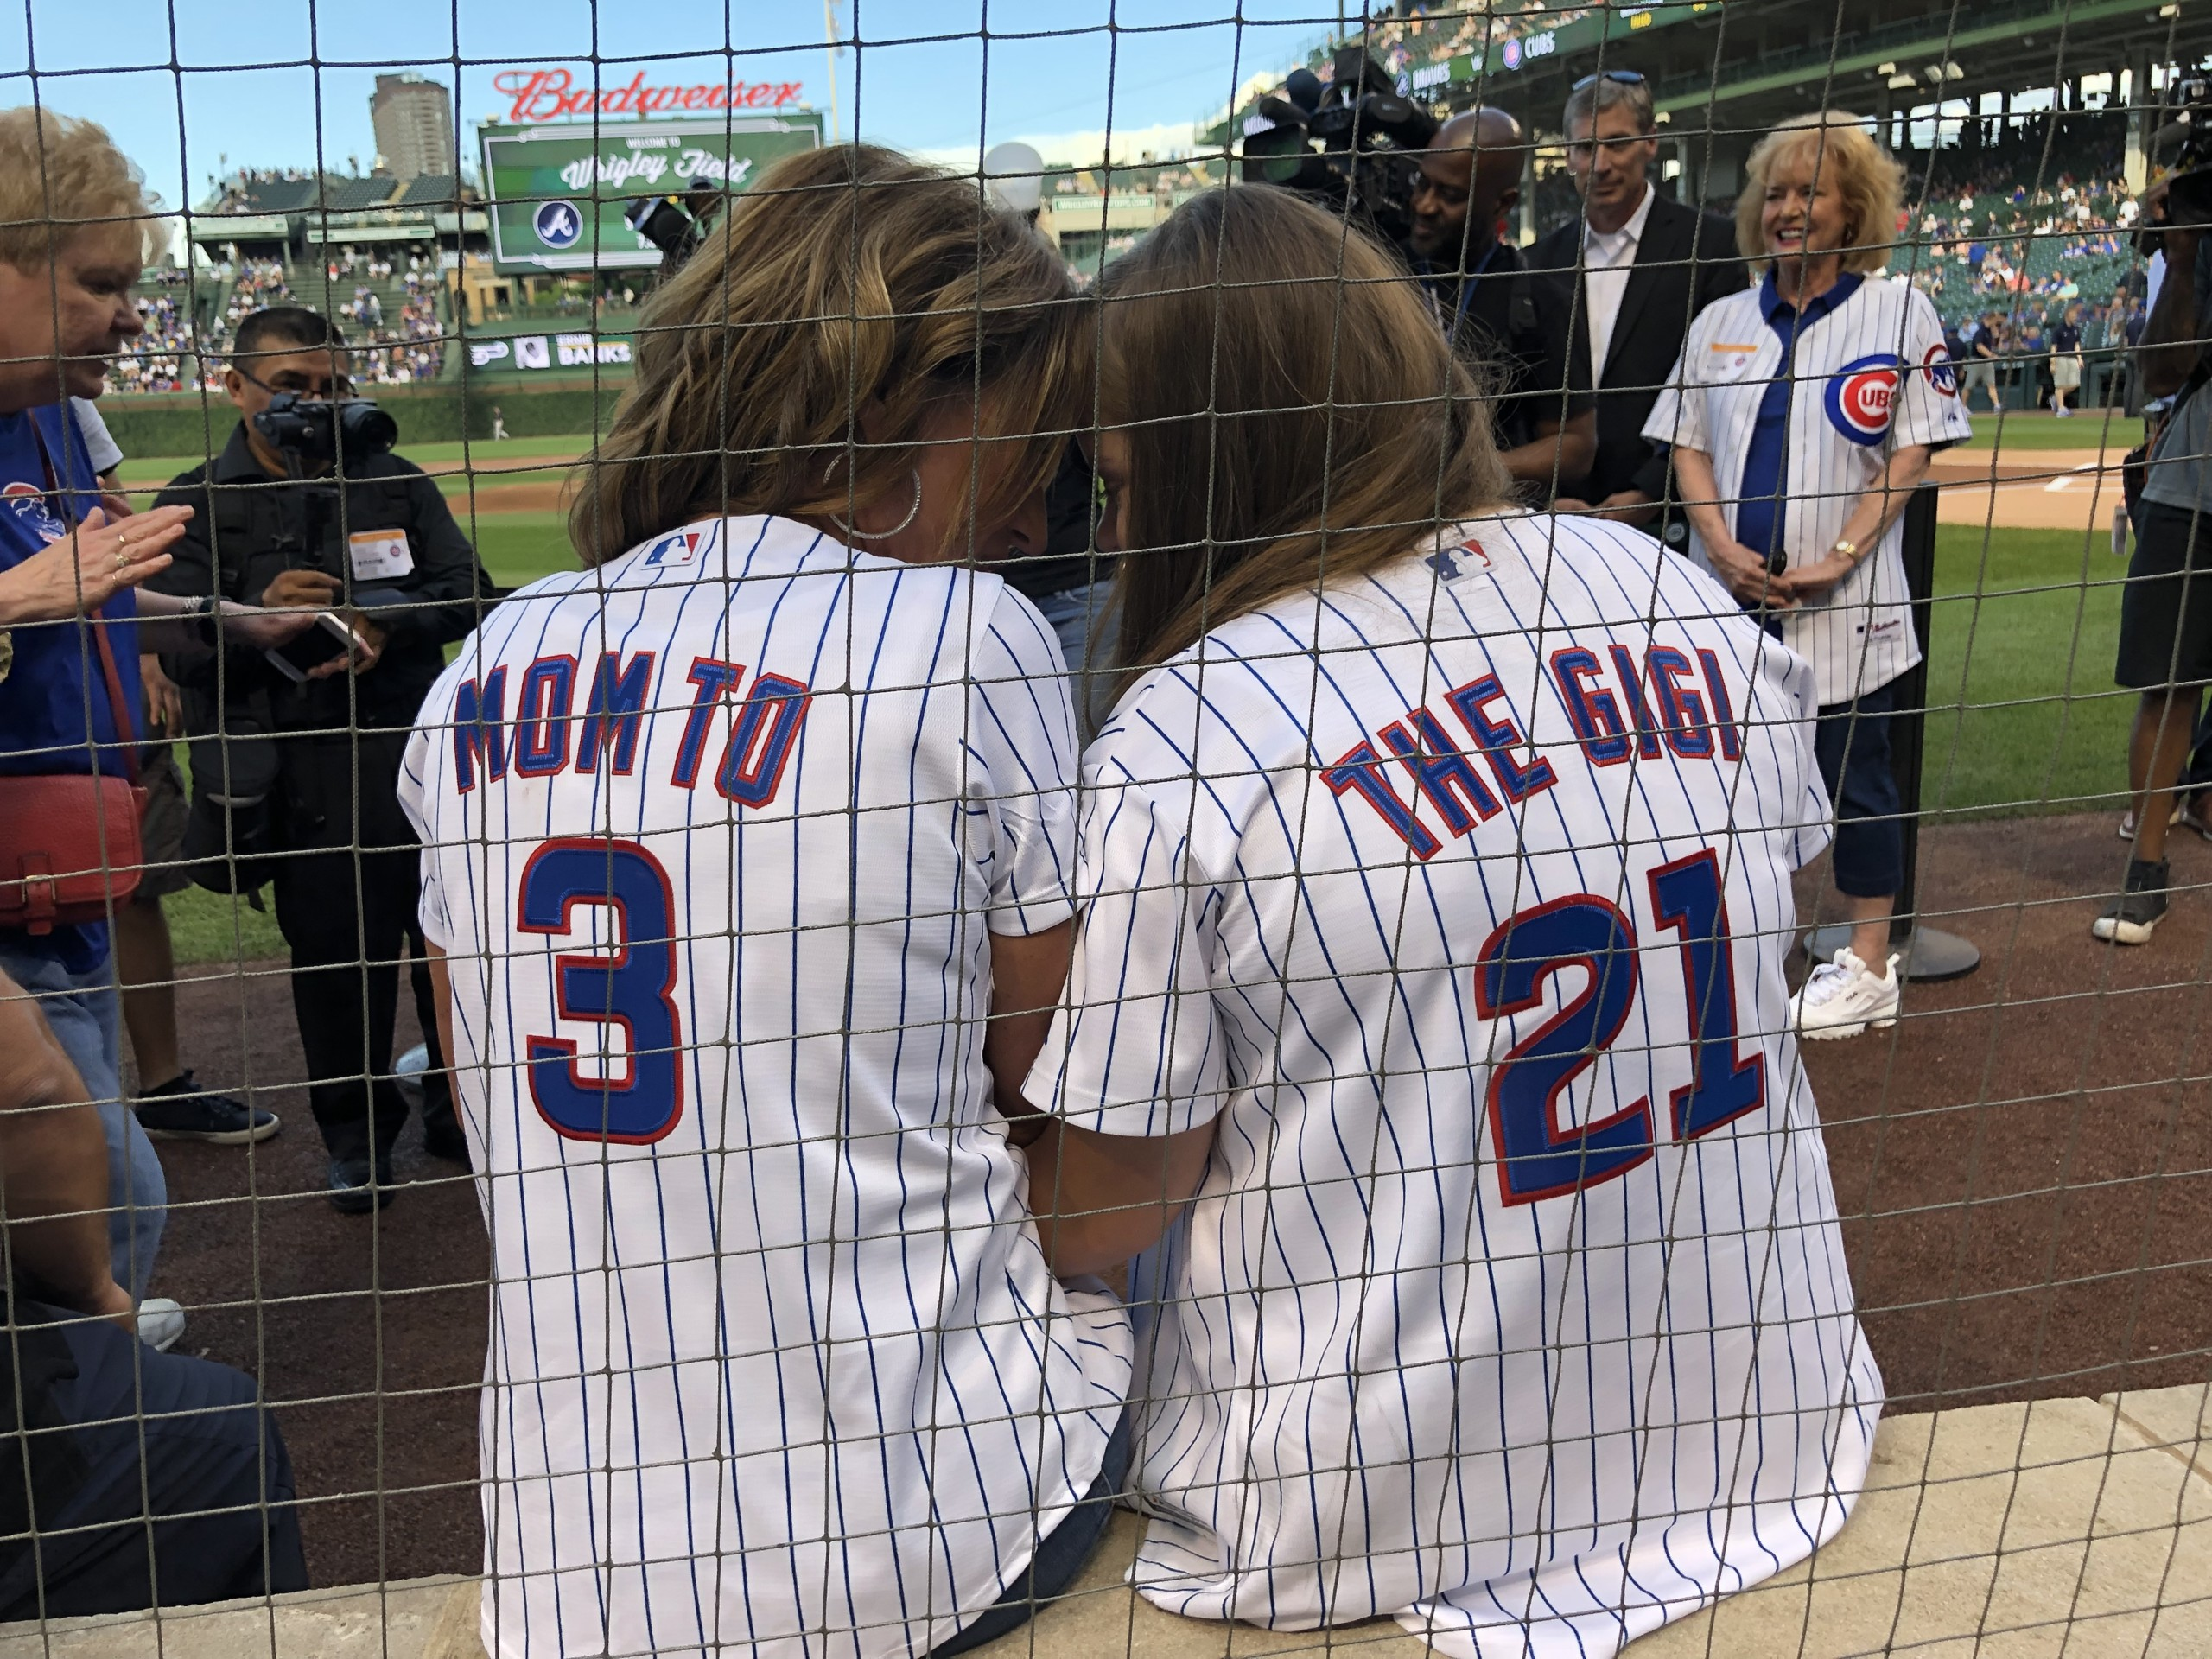 Nancy and GiGi Gianni at the Cubs game